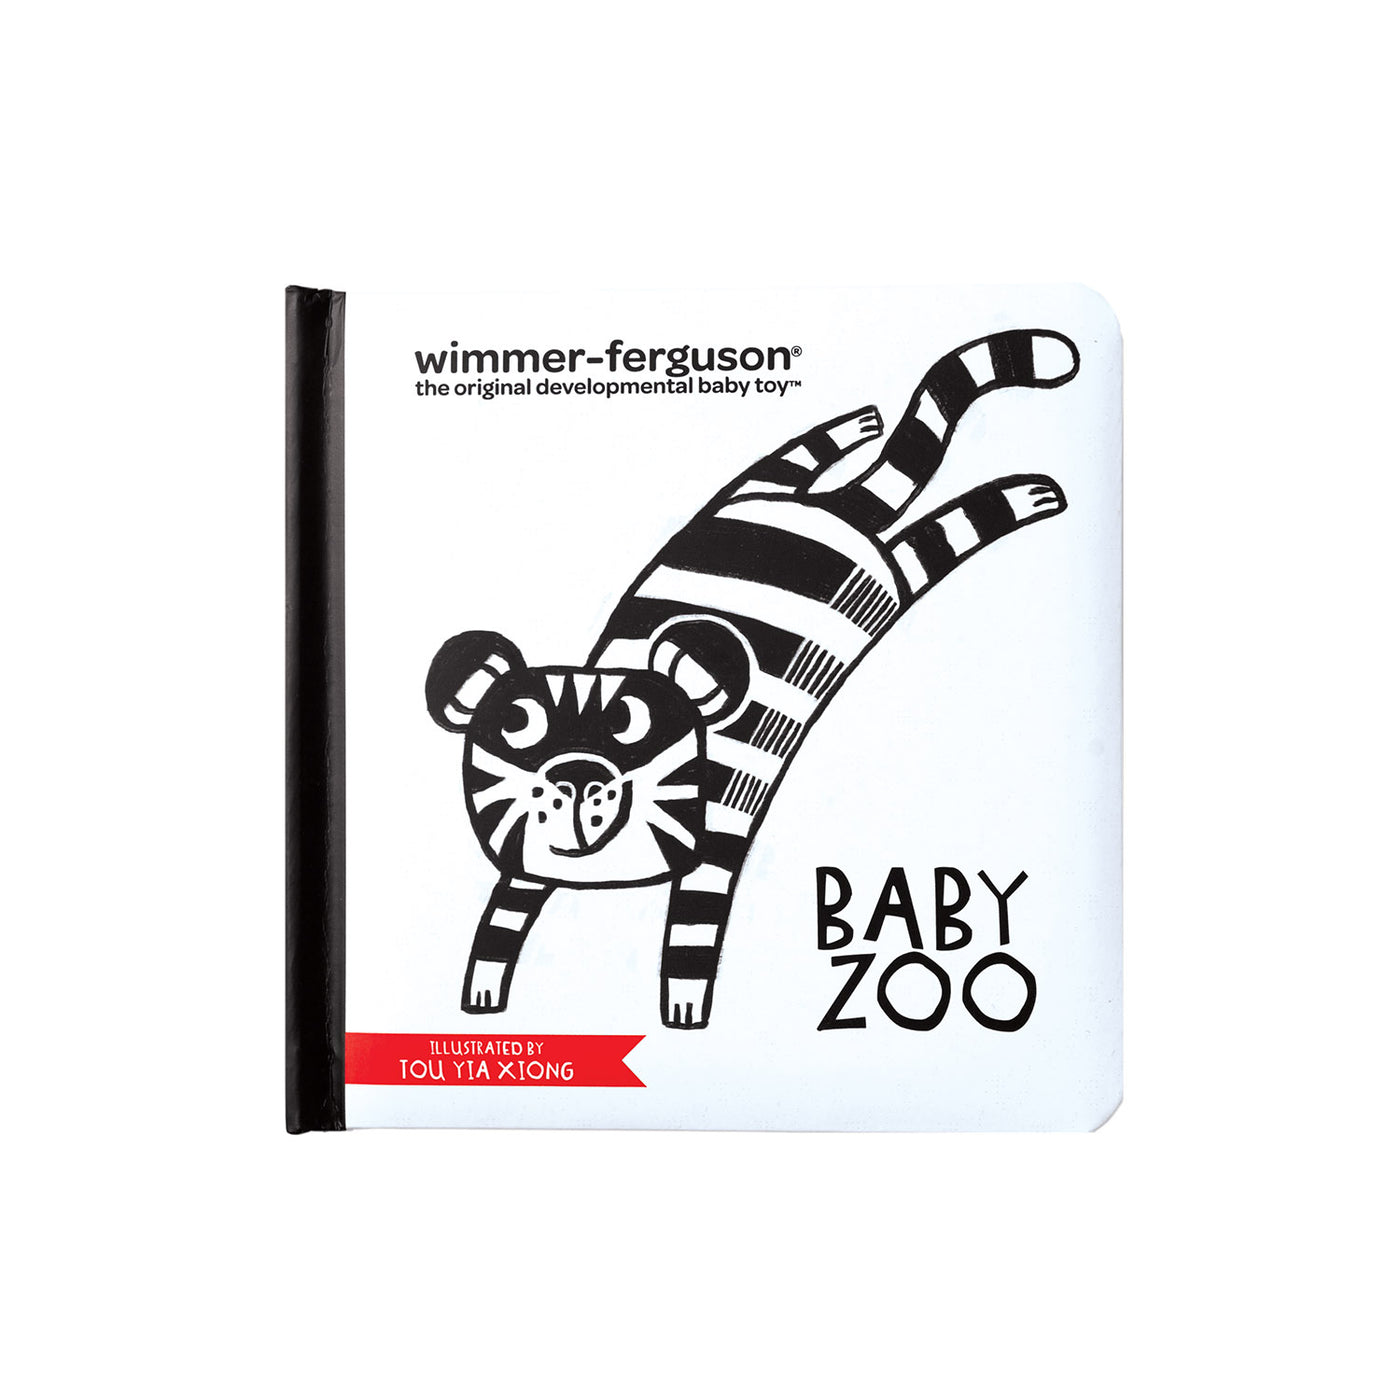 Wimmer Ferguson Baby Zoo Book - Manhattan Toy